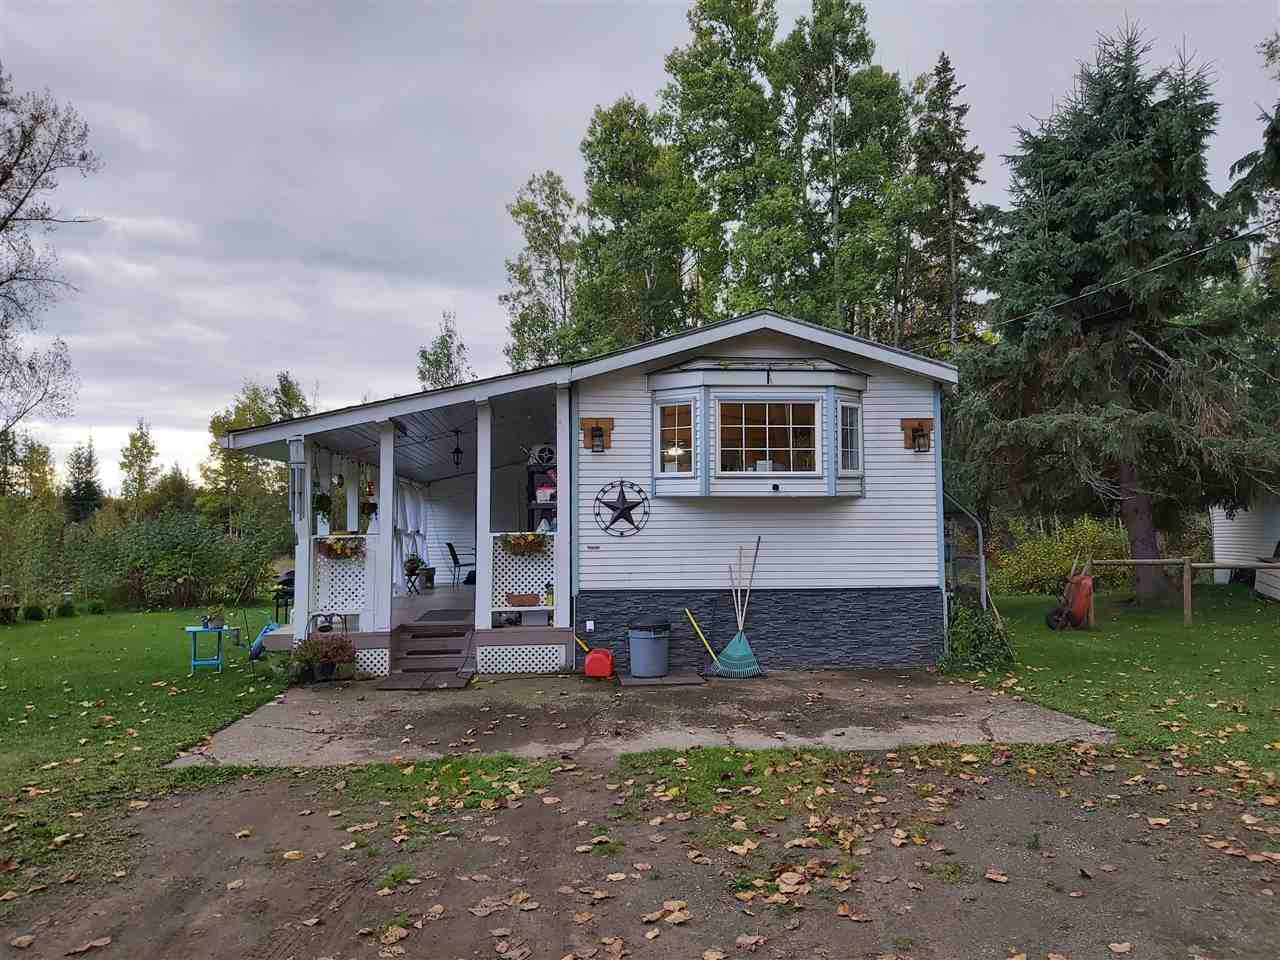 Main Photo: 6735 SALMON VALLEY Road: Salmon Valley Manufactured Home for sale (PG Rural North (Zone 76))  : MLS®# R2502333